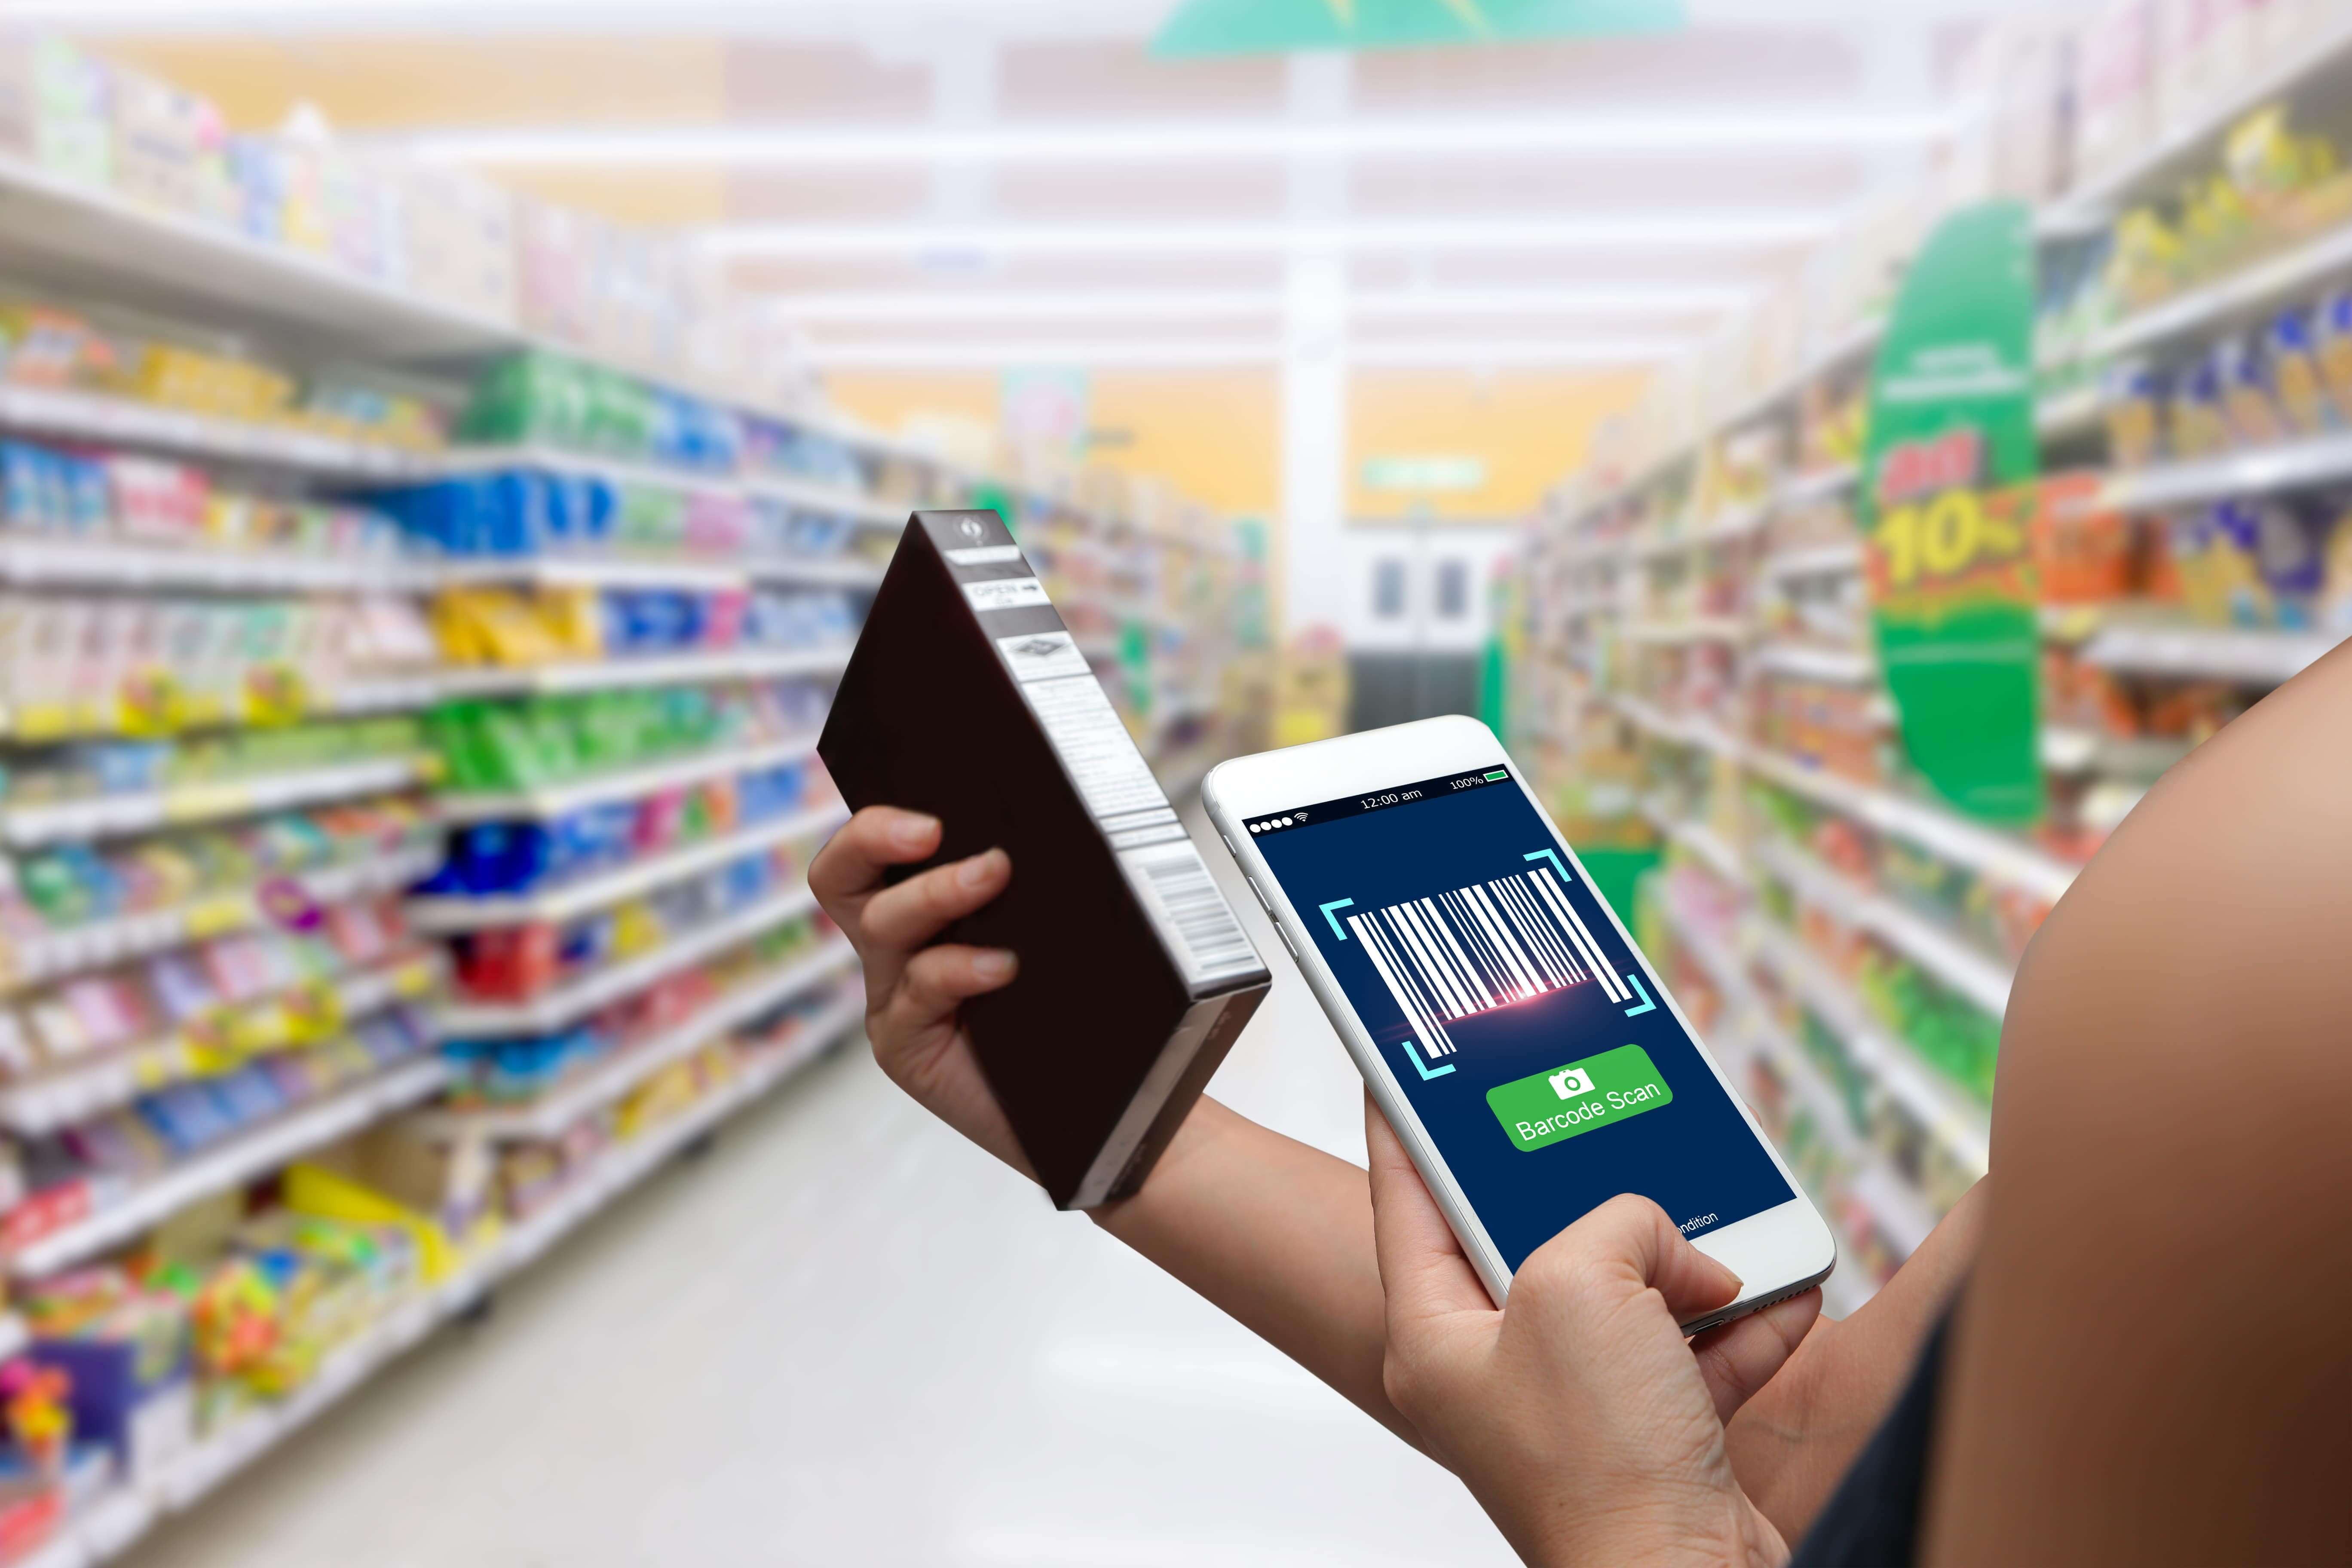 Grocery Shopping Is Not The Same With AR Technology